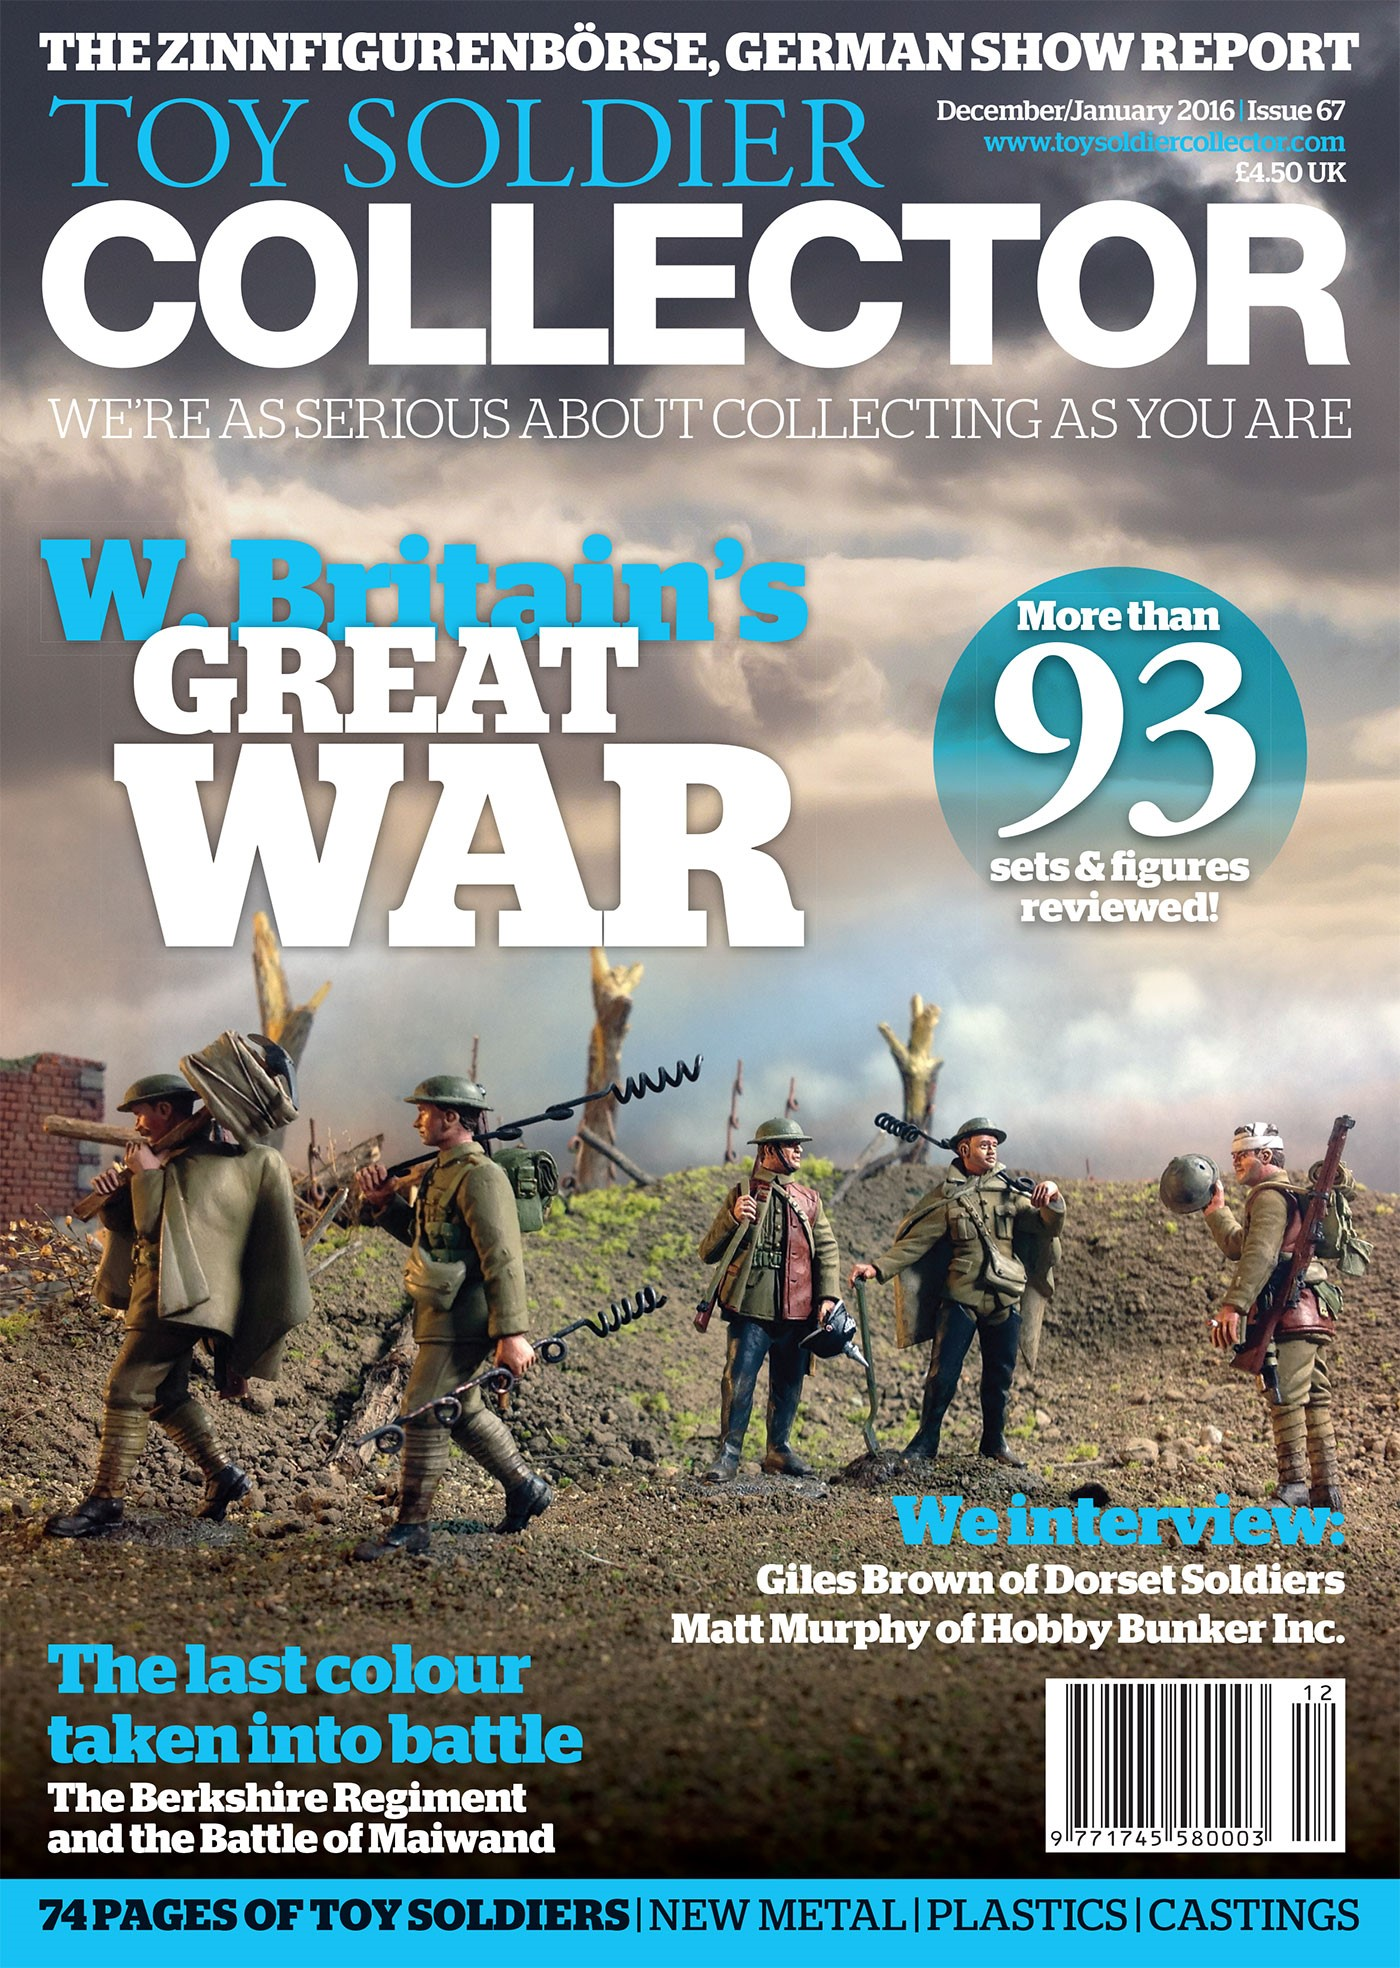 Guideline Publications Toy Soldier Collector #67 December 2015 / January 2016